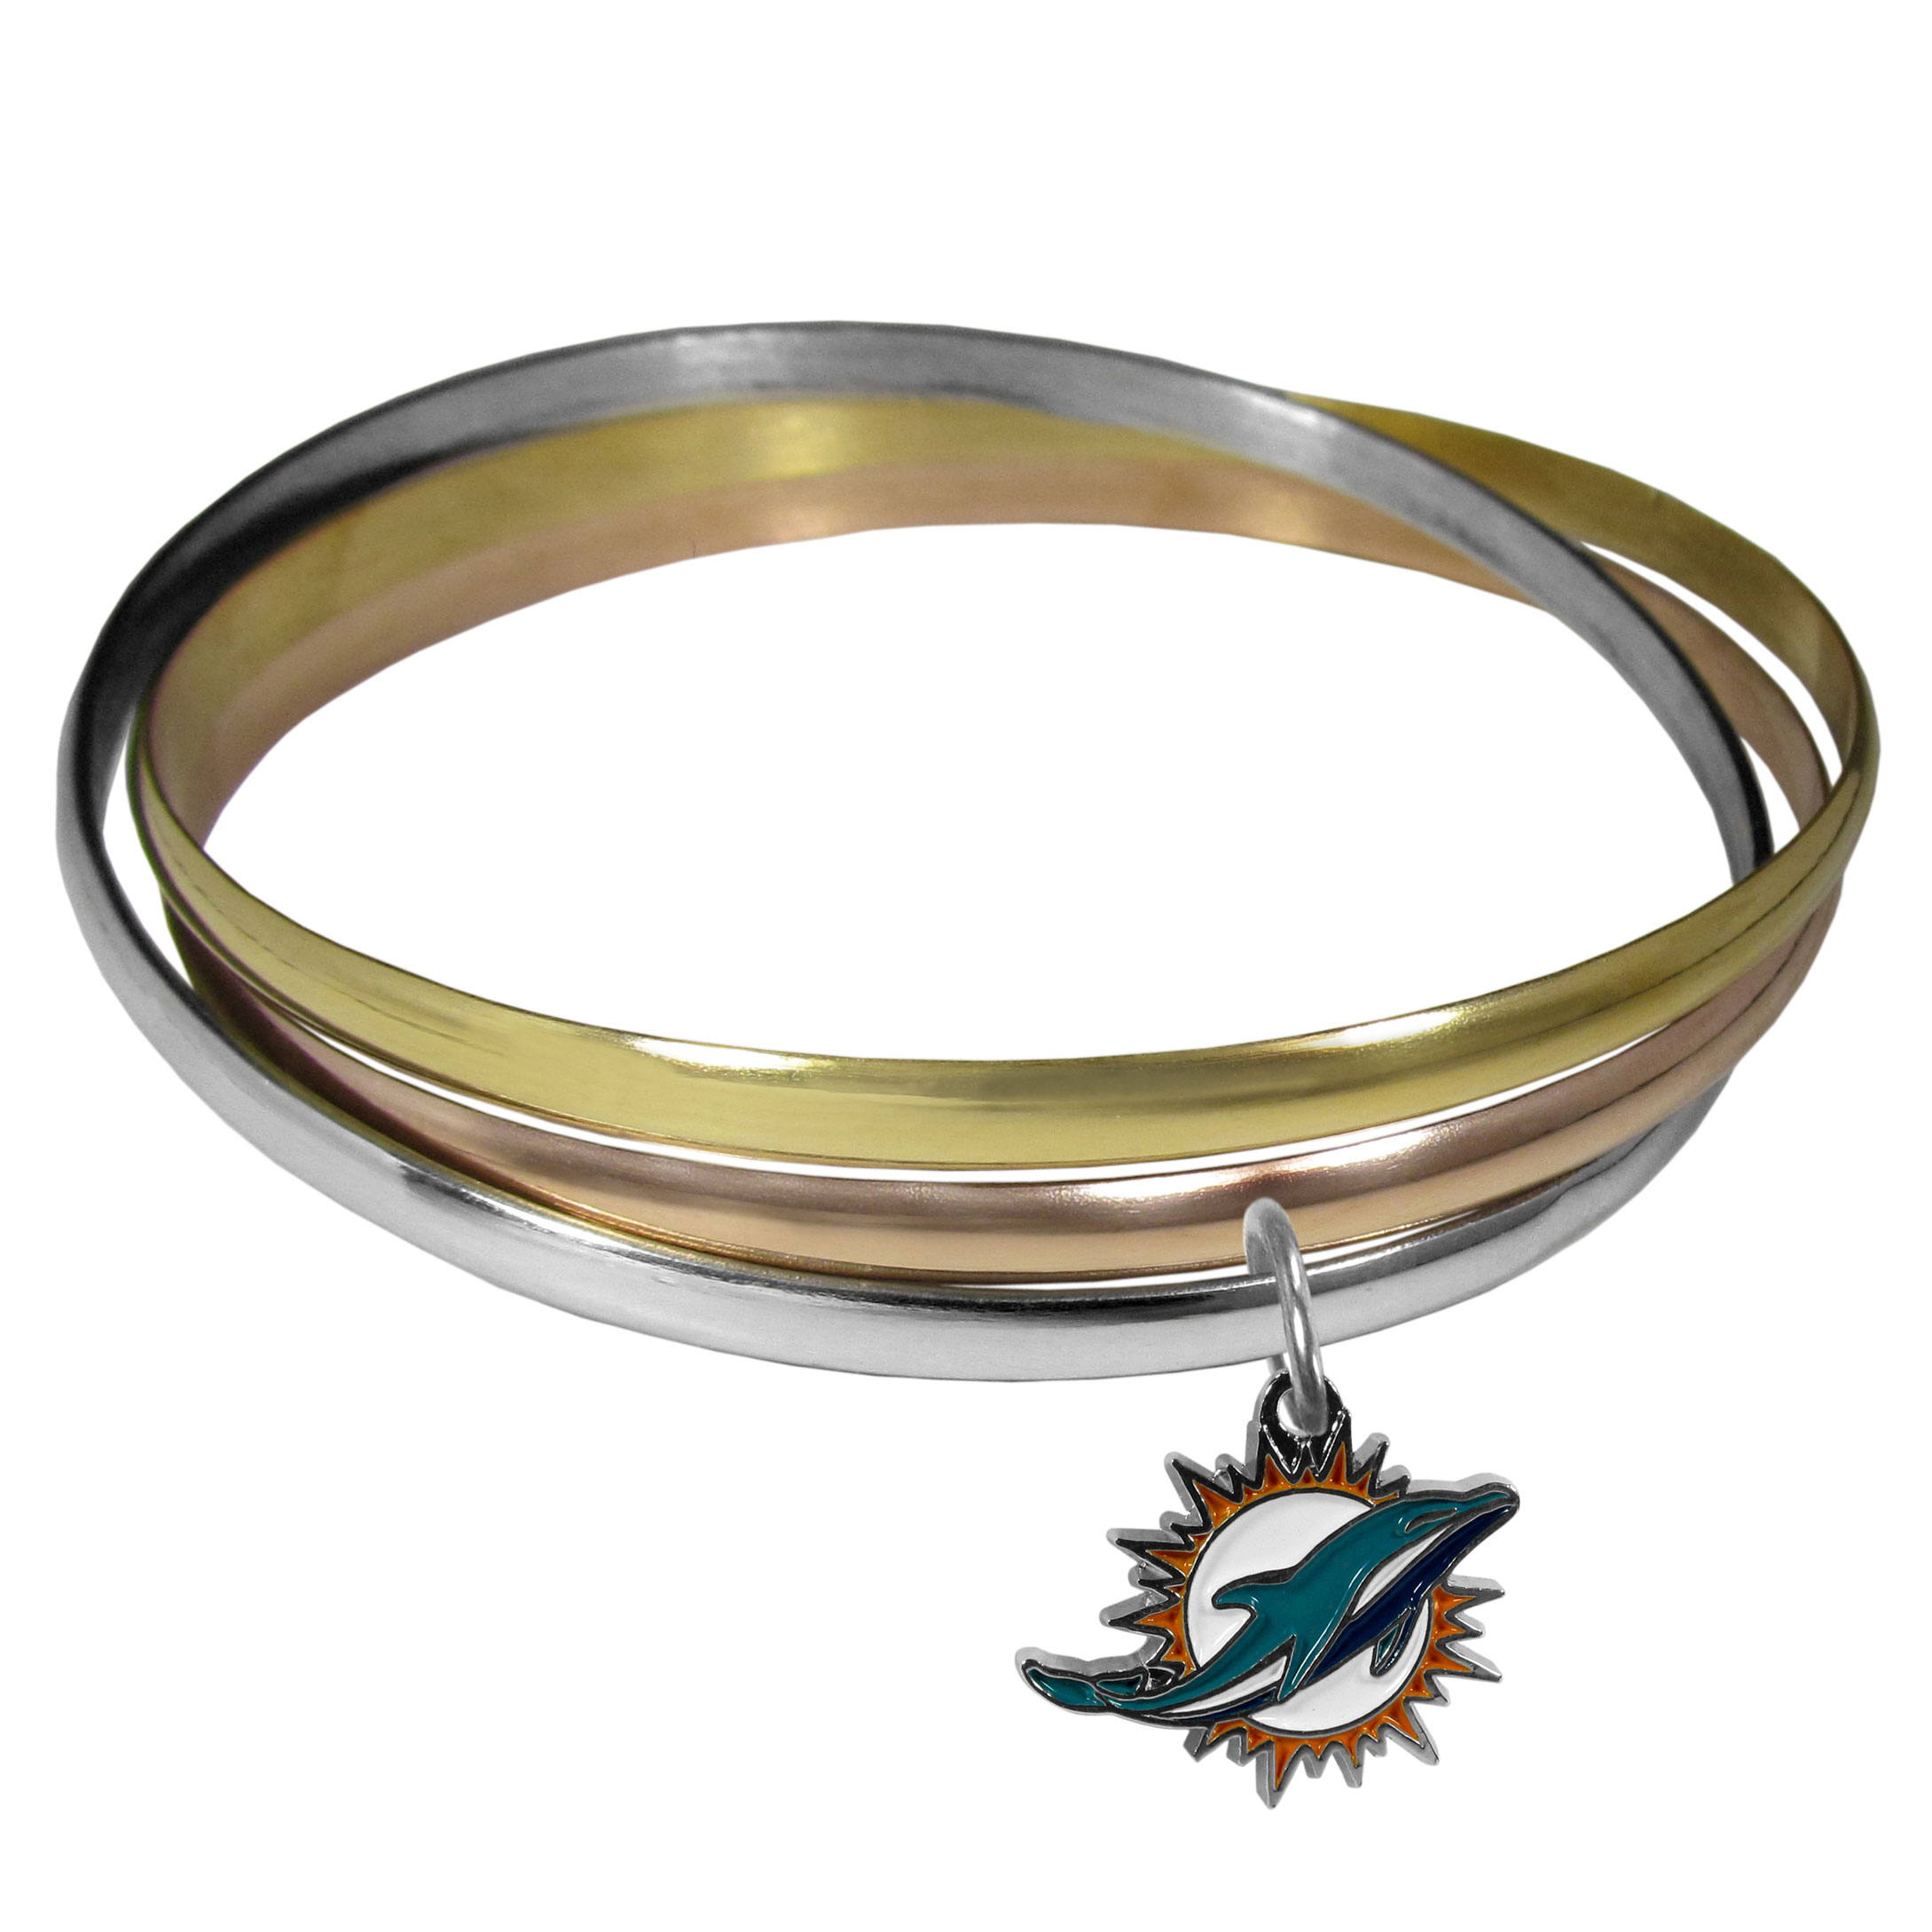 Miami Dolphins Tri-color Bangle Bracelet - These beautiful bangles come in a interlocking style and feature a fully cast Miami Dolphins charm with enameled team colors. The bracelet has a silver toned bangle, gold tone bangle and brass toned bangle.